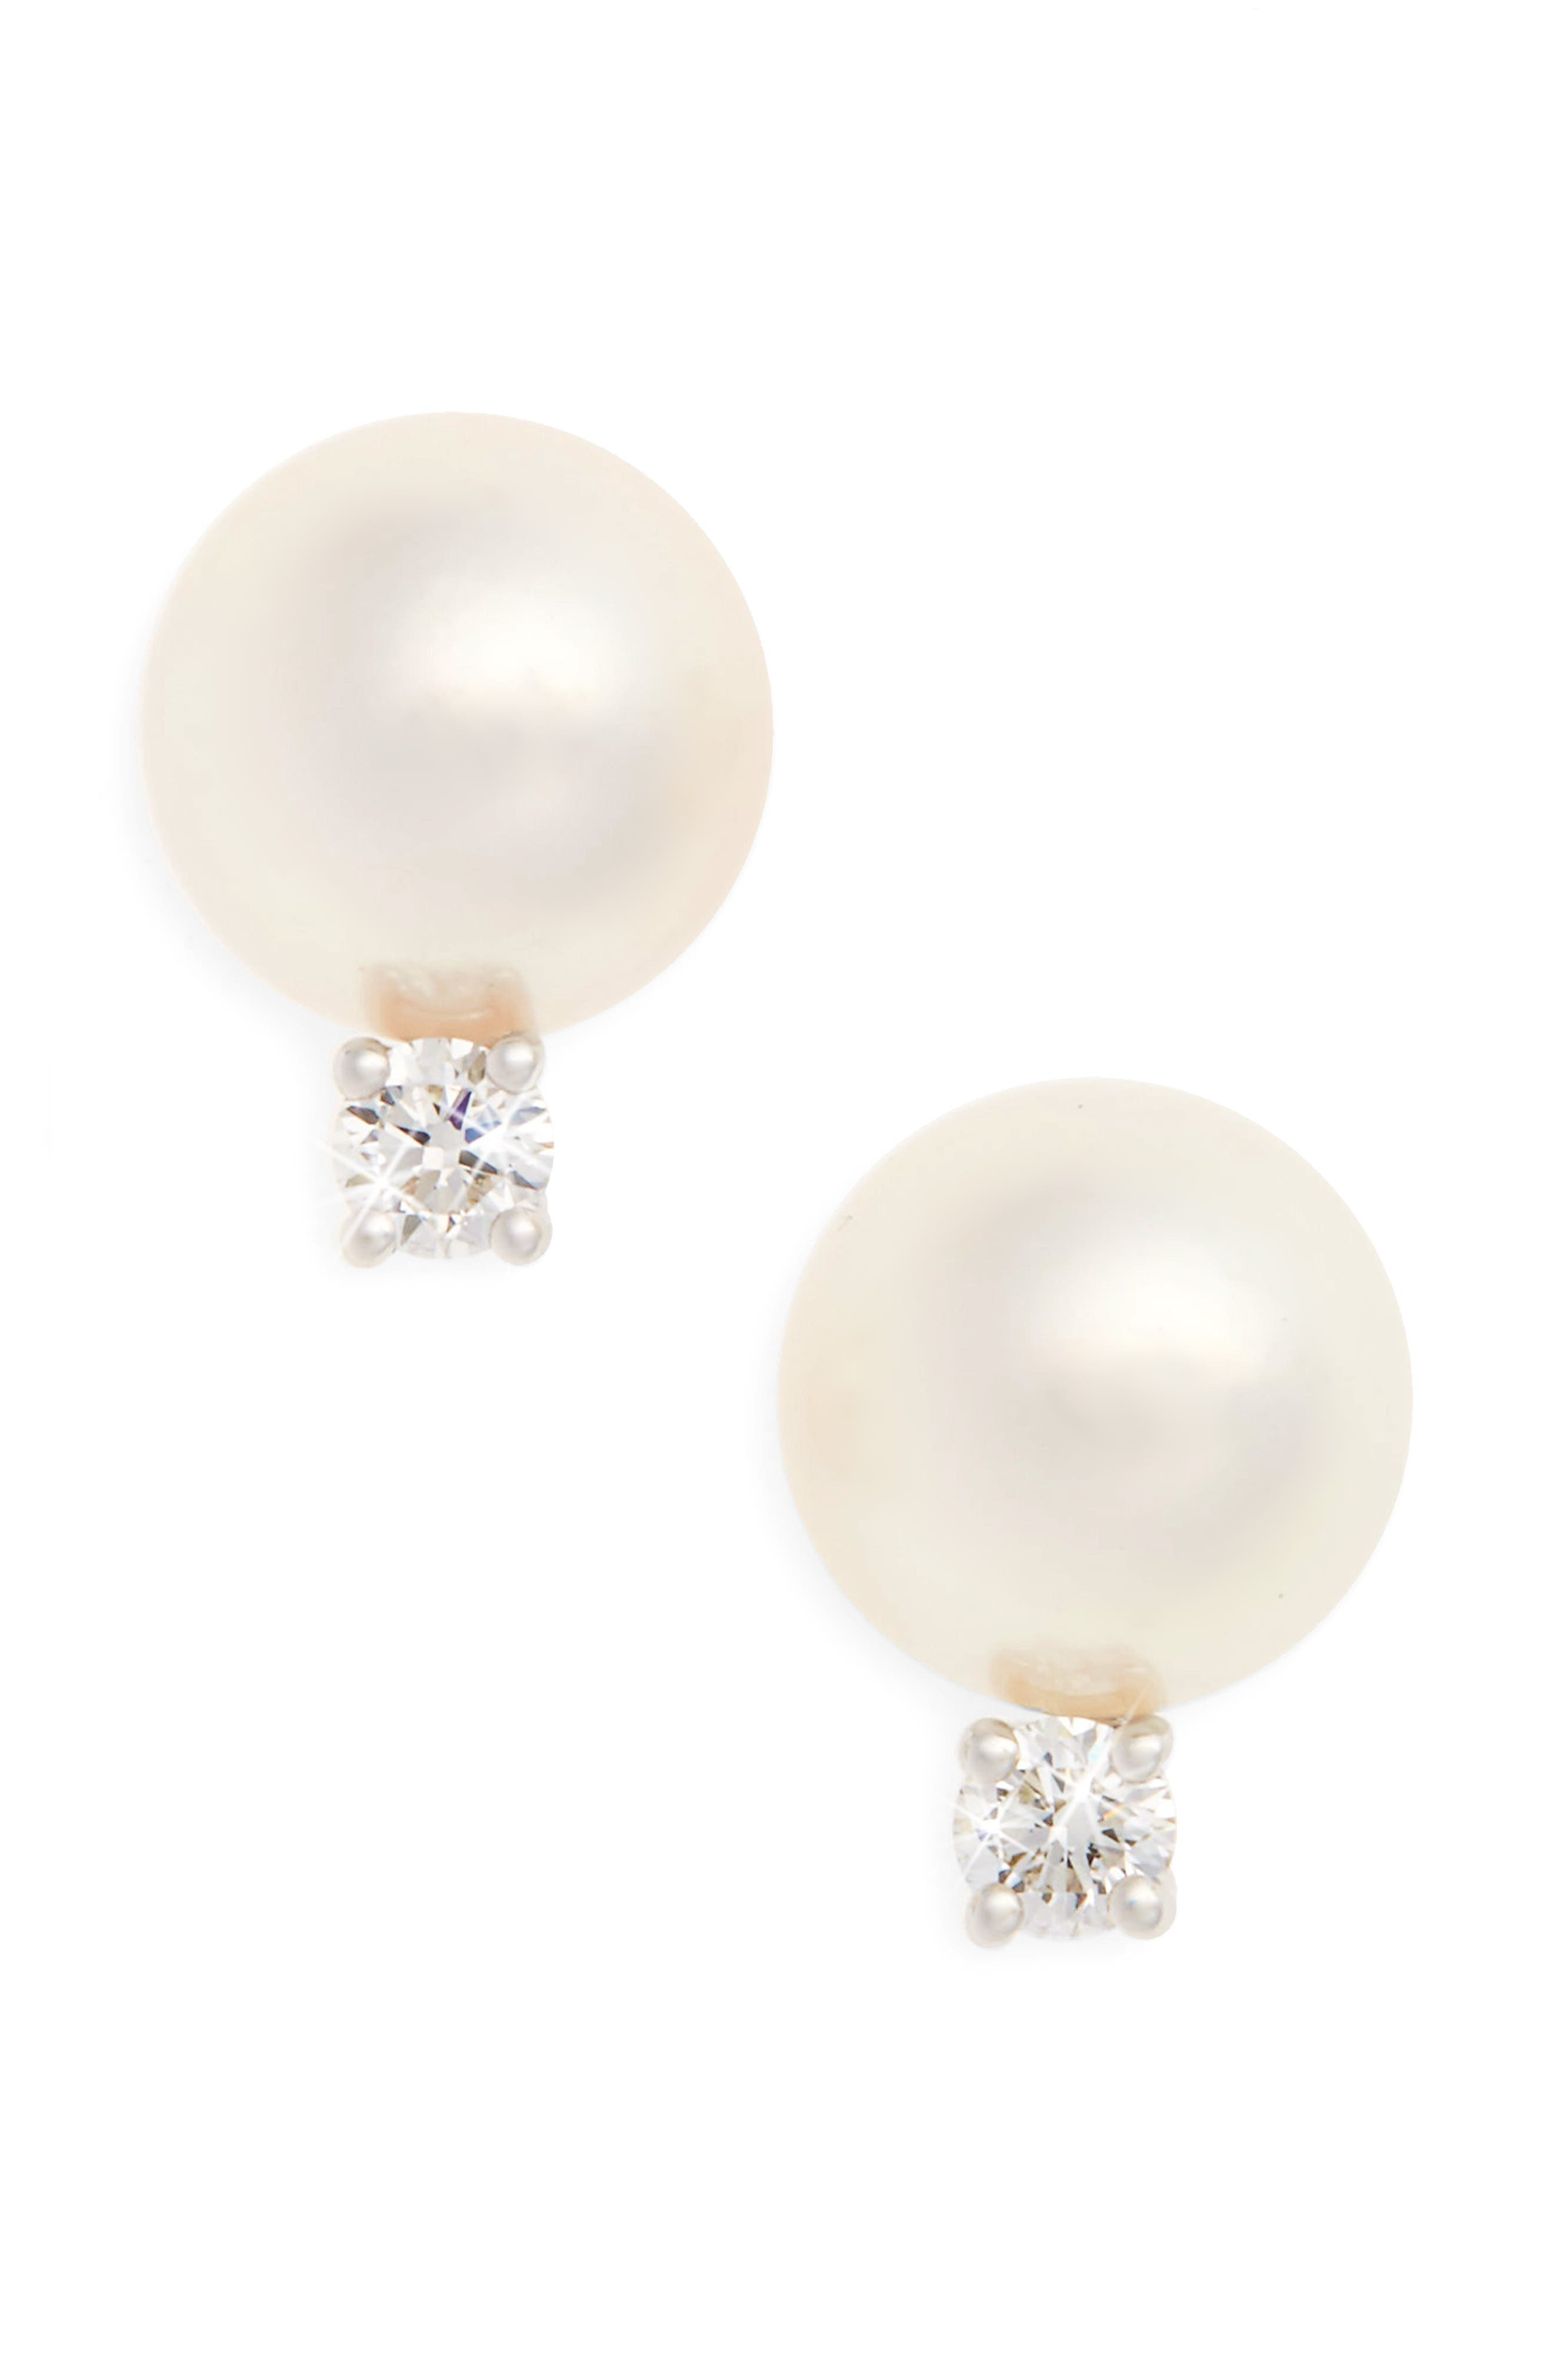 Akoya Pearl & Diamond Stud Earrings,                             Main thumbnail 1, color,                             710